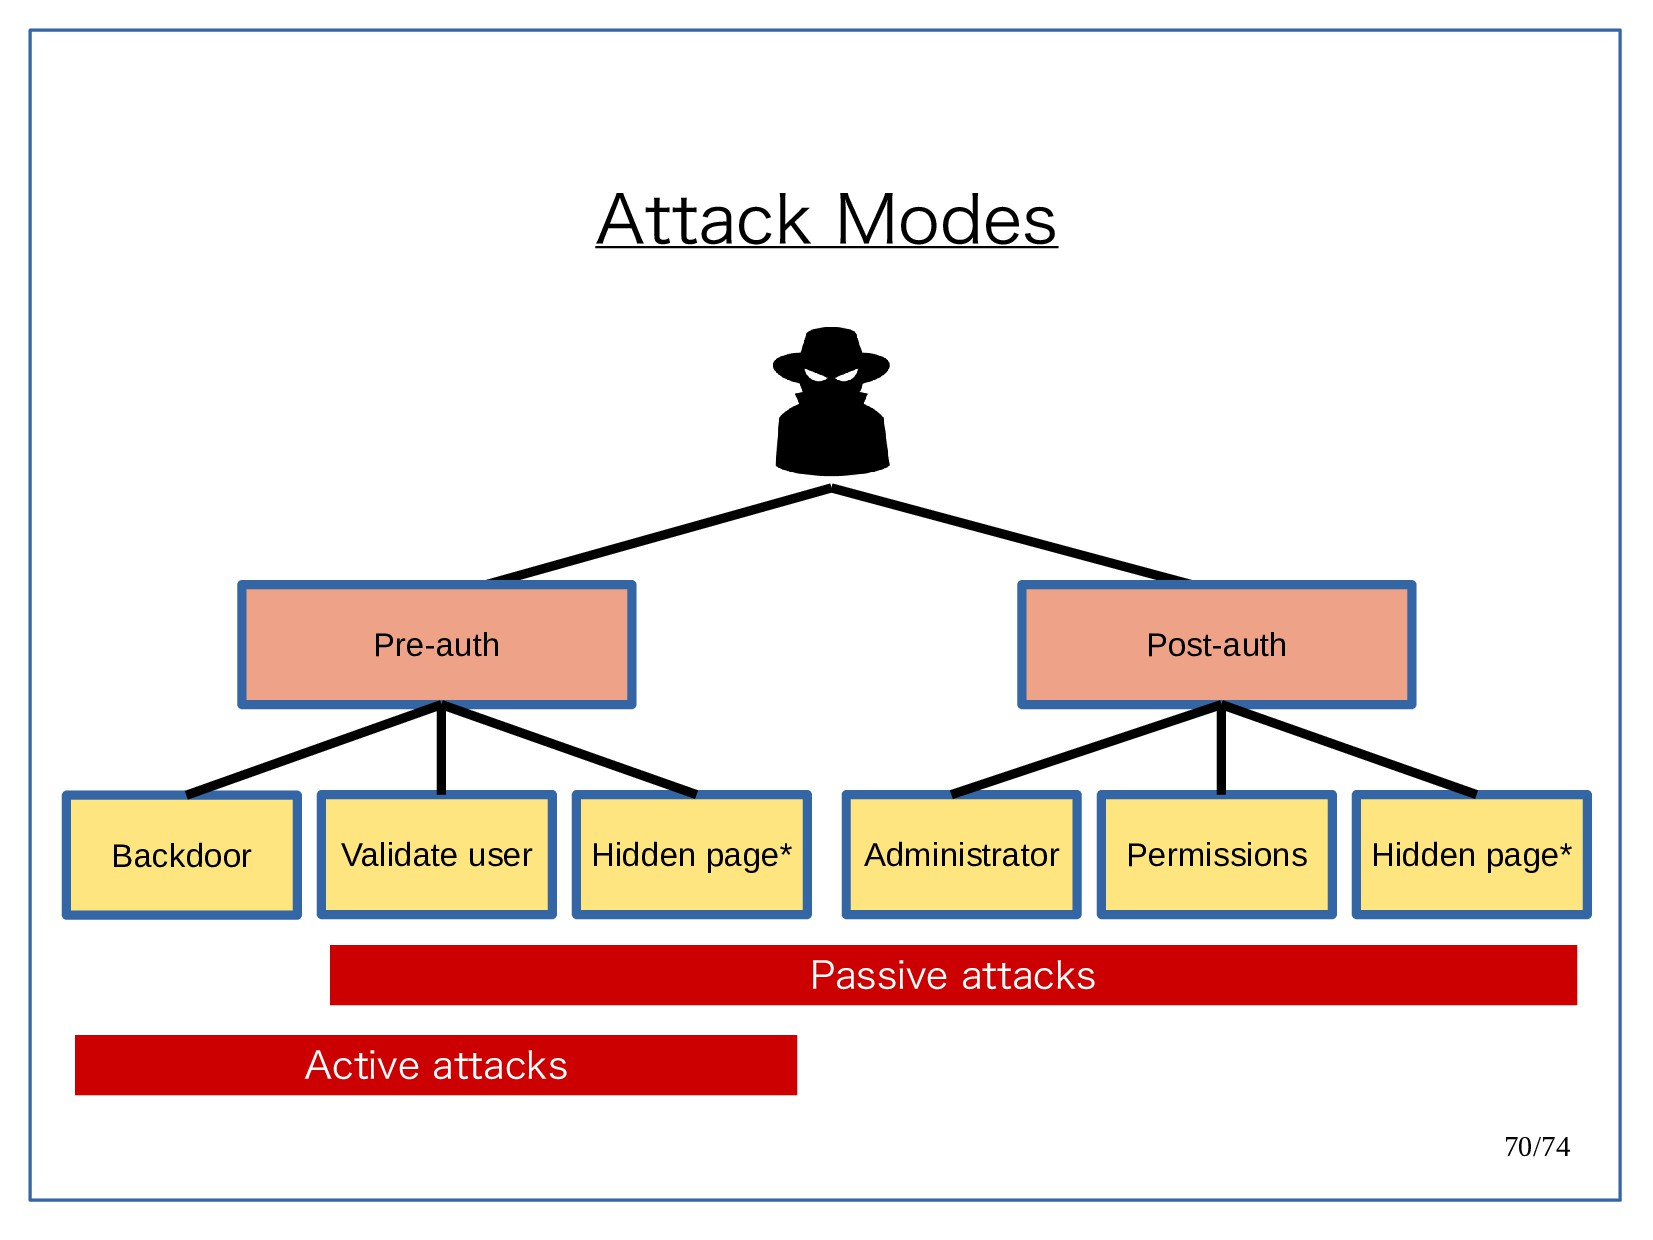 70/74 Attack Modes Post-auth Administrator Perm...